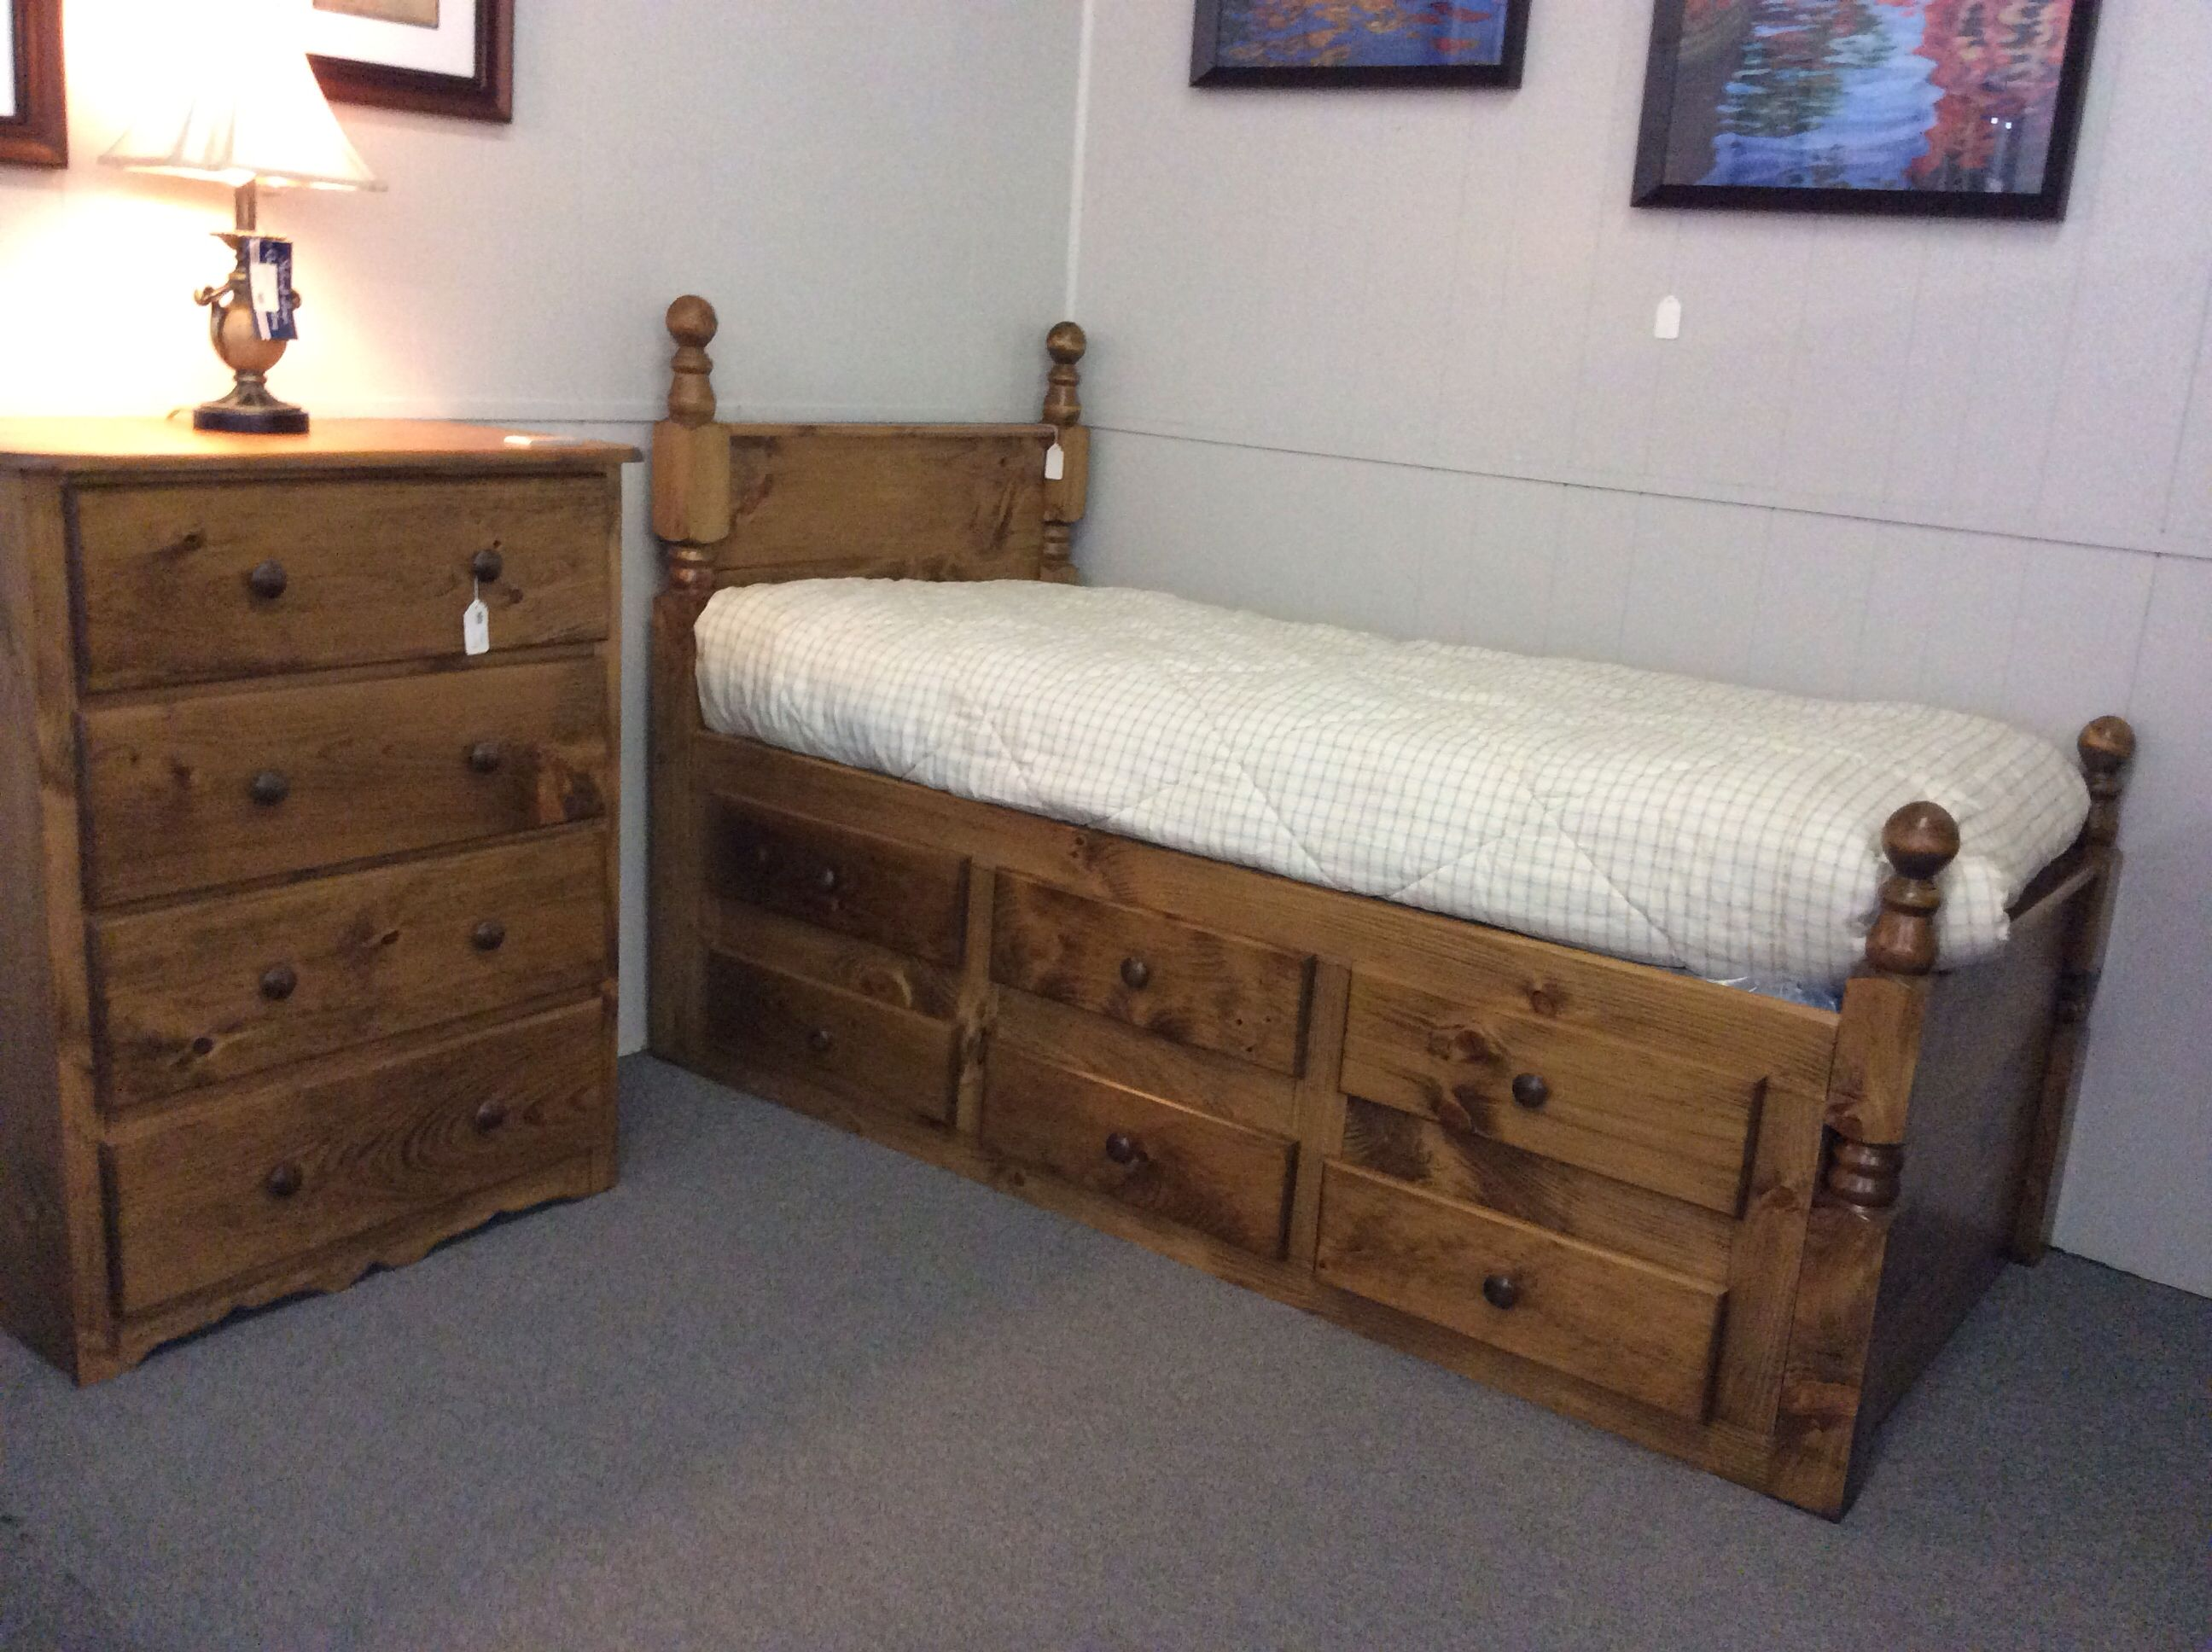 6 Drawer Dresser Bed available in 16 different finishes